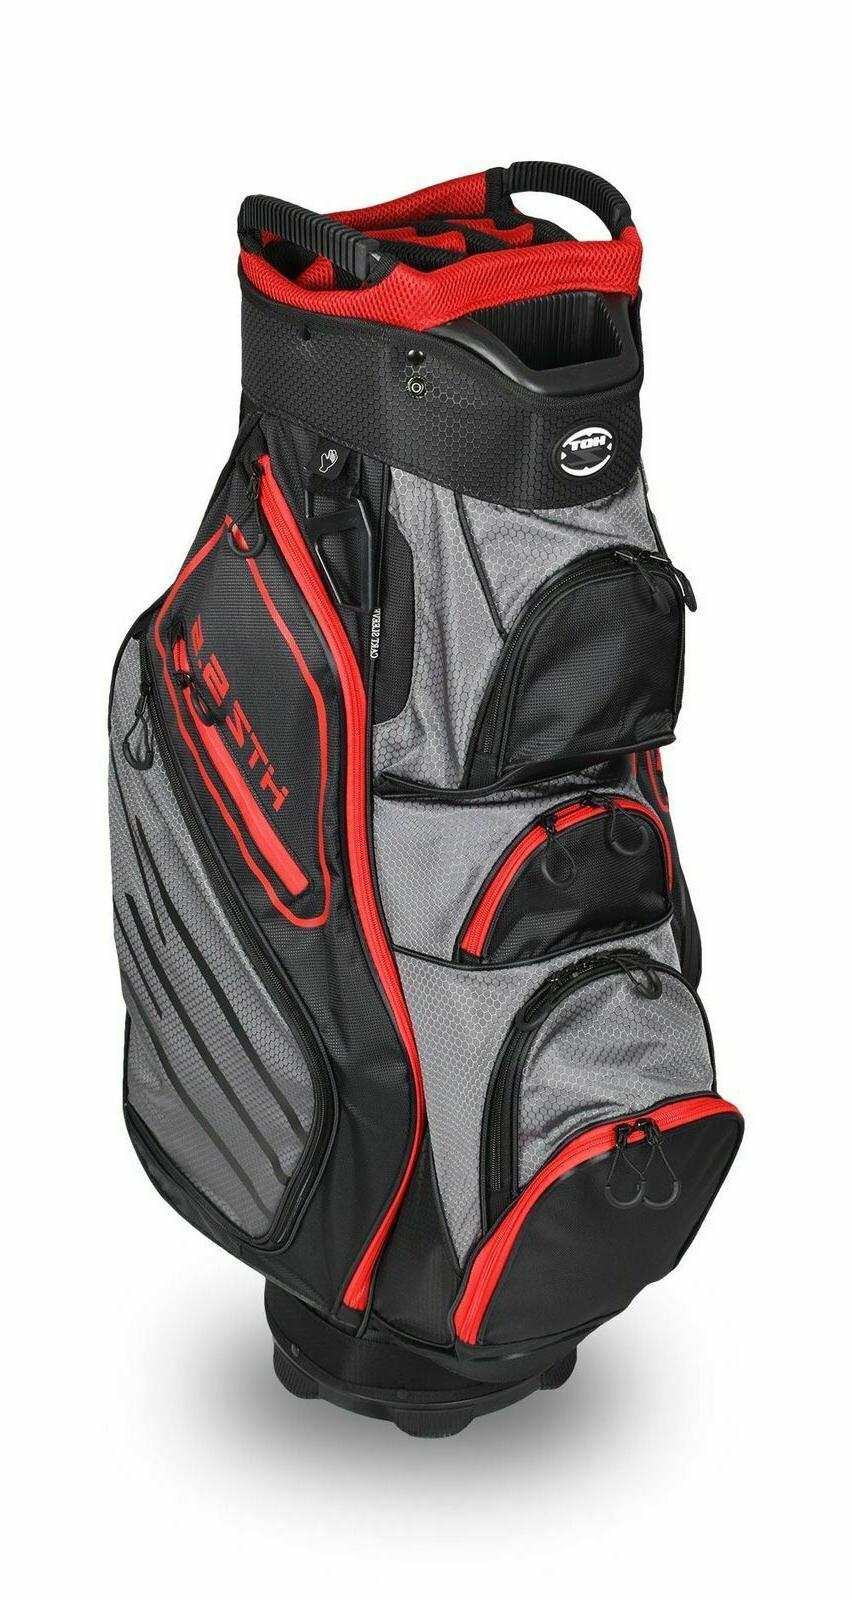 Hot-Z Golf 2018 5.5 Cart Black/Red/Grey Bag Free Shipping